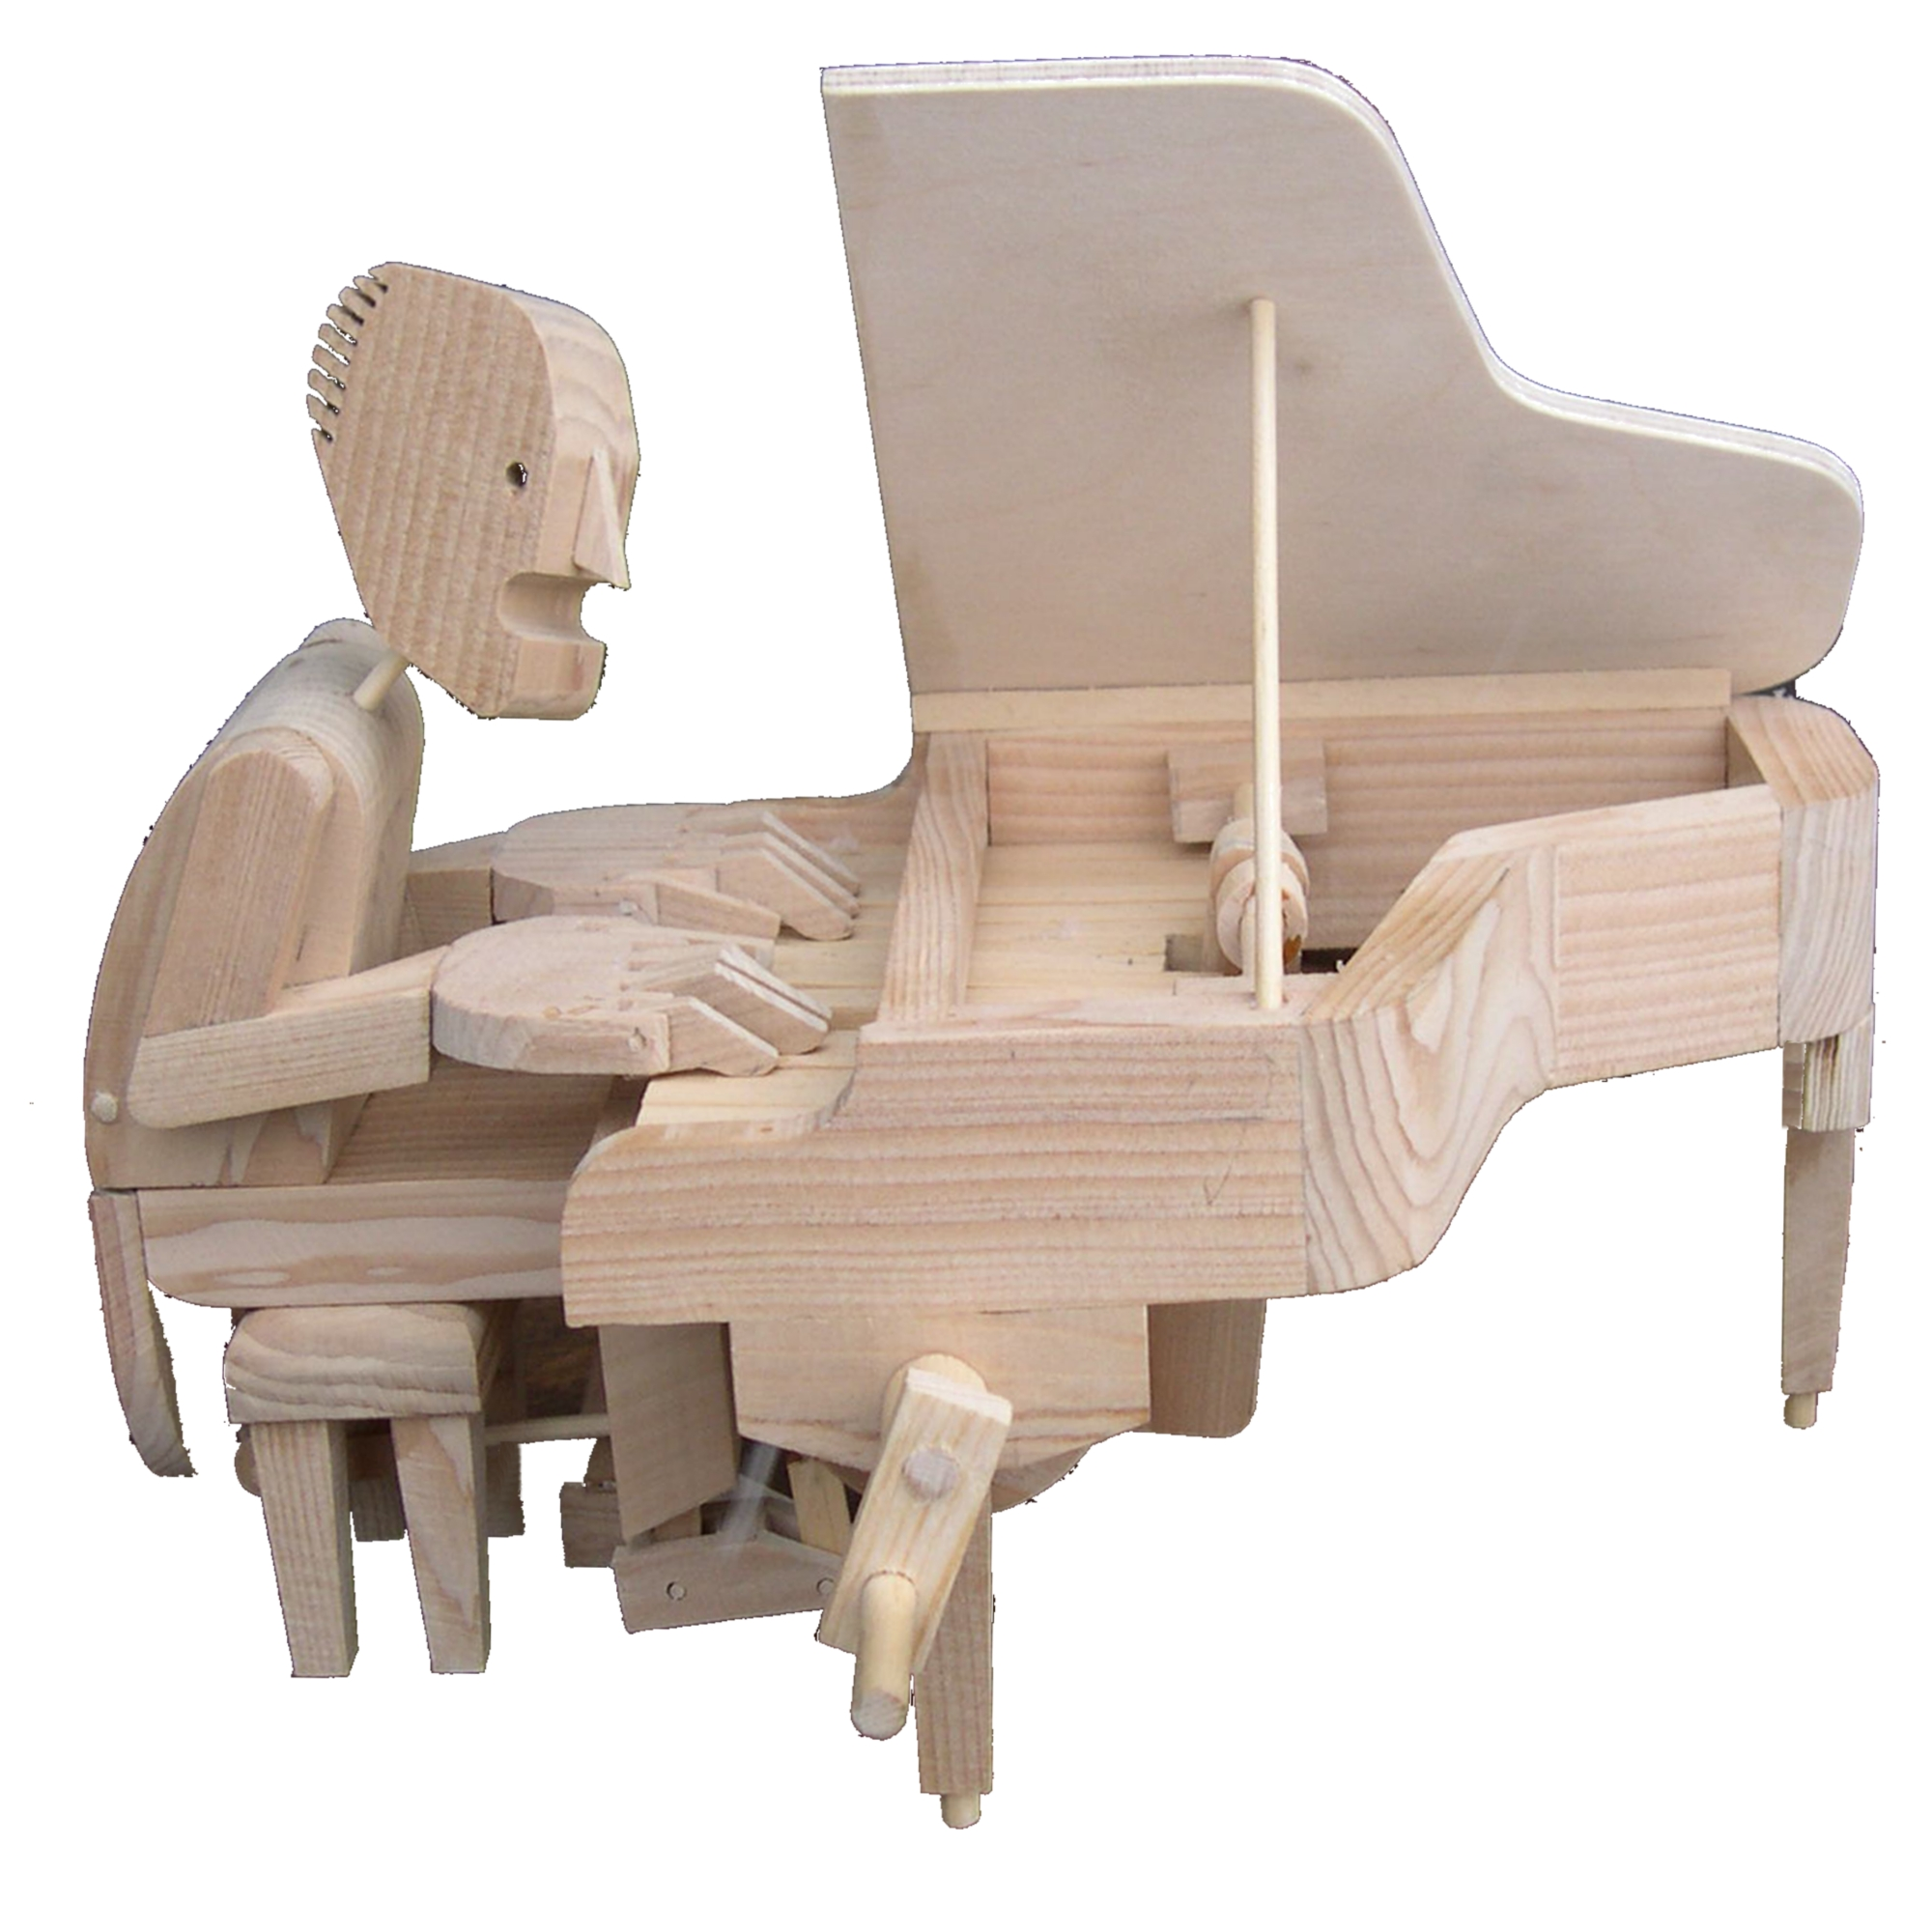 Timberkits Pianist Model